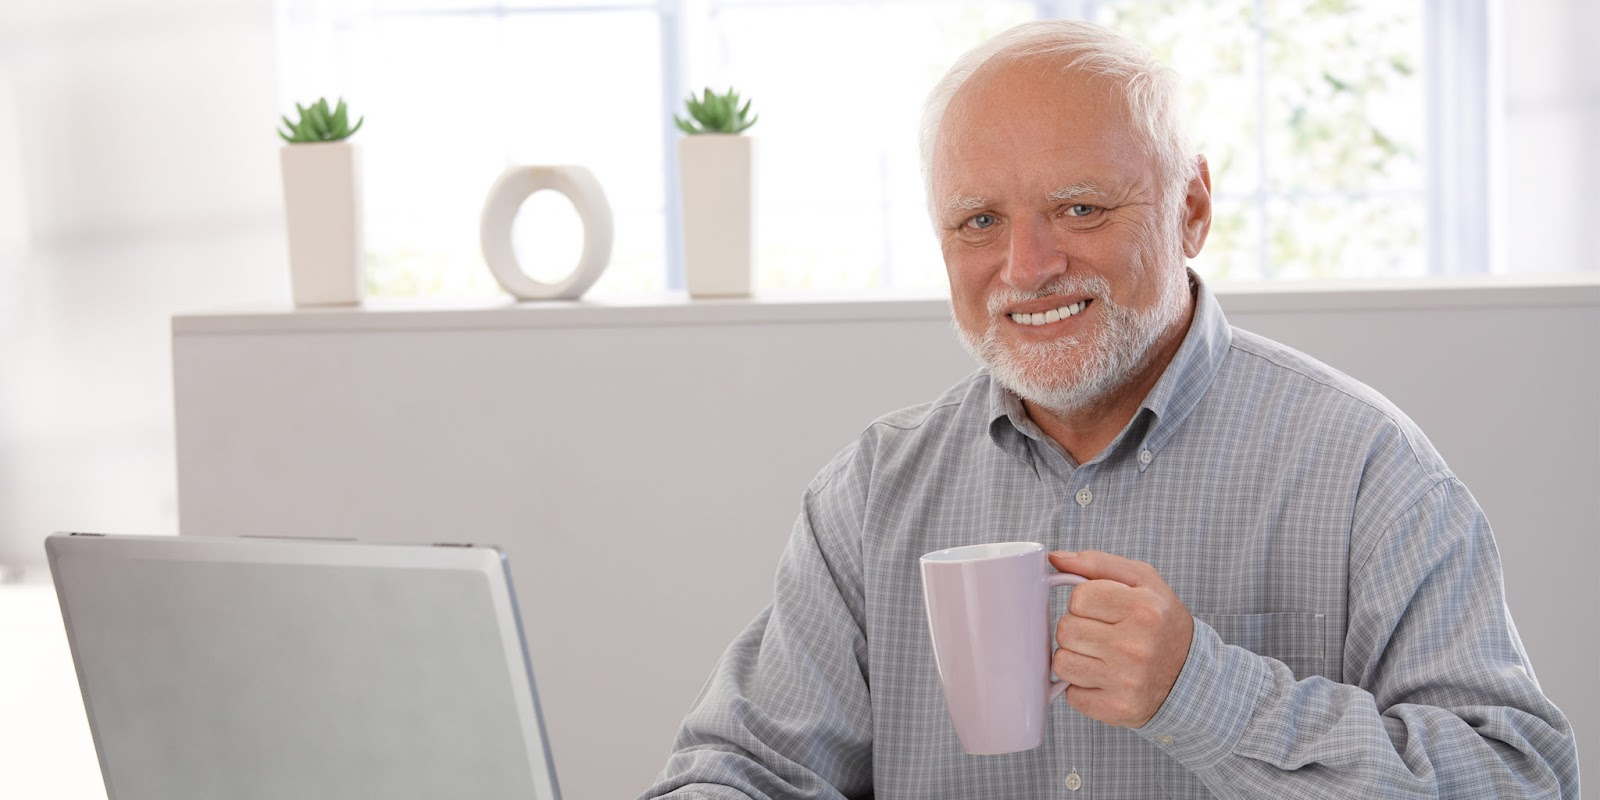 hide the pain harold free stock image